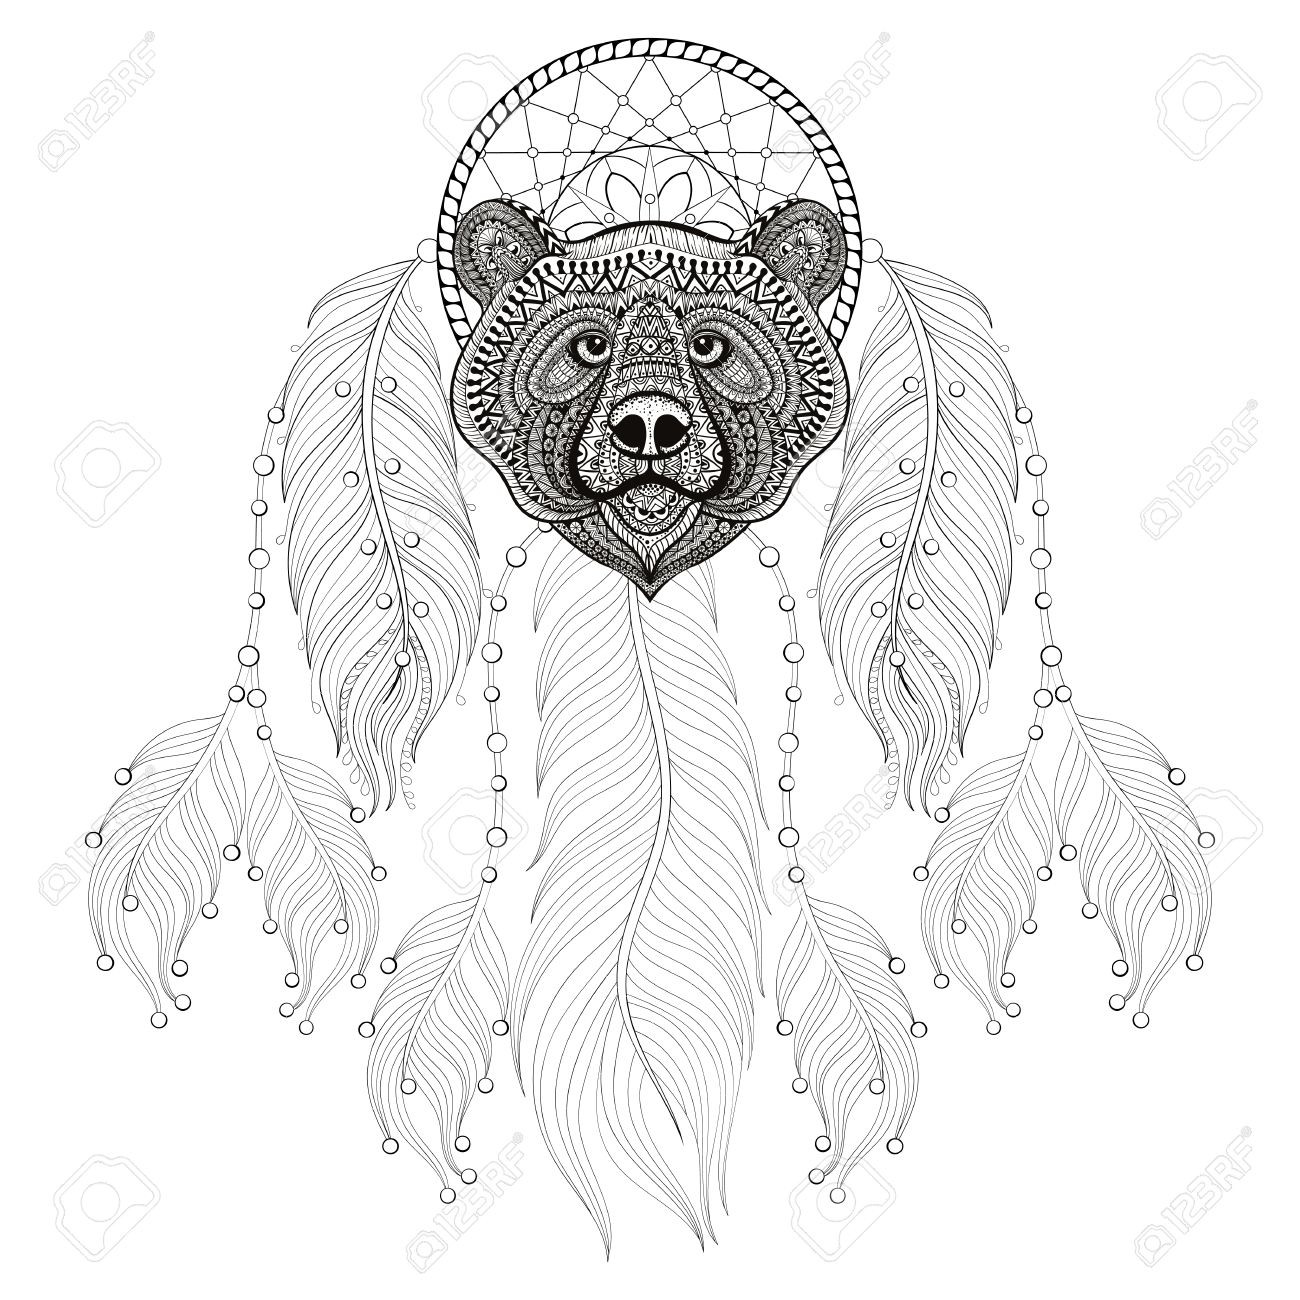 1300x1300 Hand Drawn Dreamcatcher With Bear Head For Adult Coloring Pages